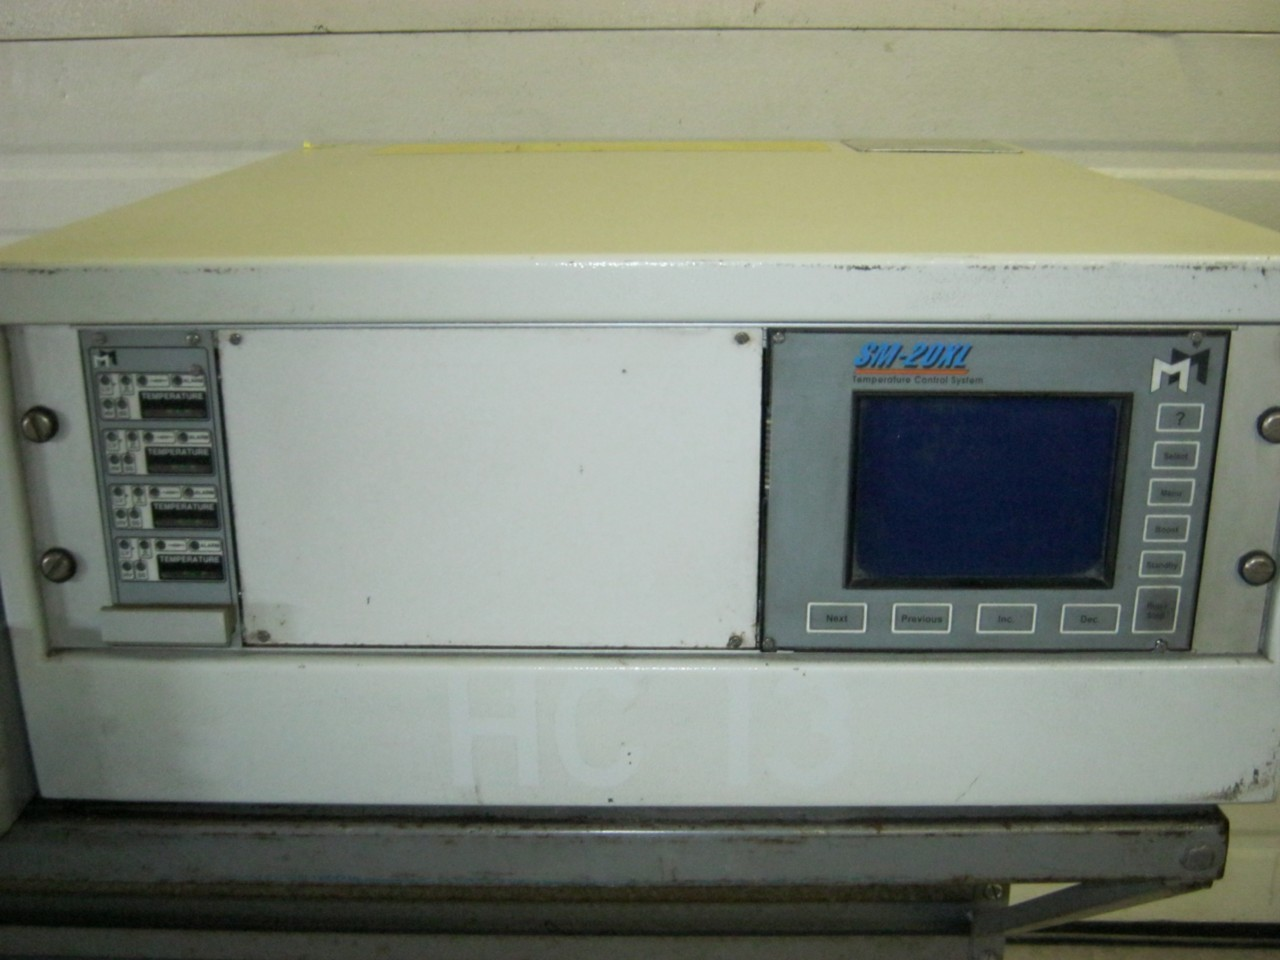 Details about Mold Masters LTD HR Temperature Control System Model #7C7A4F